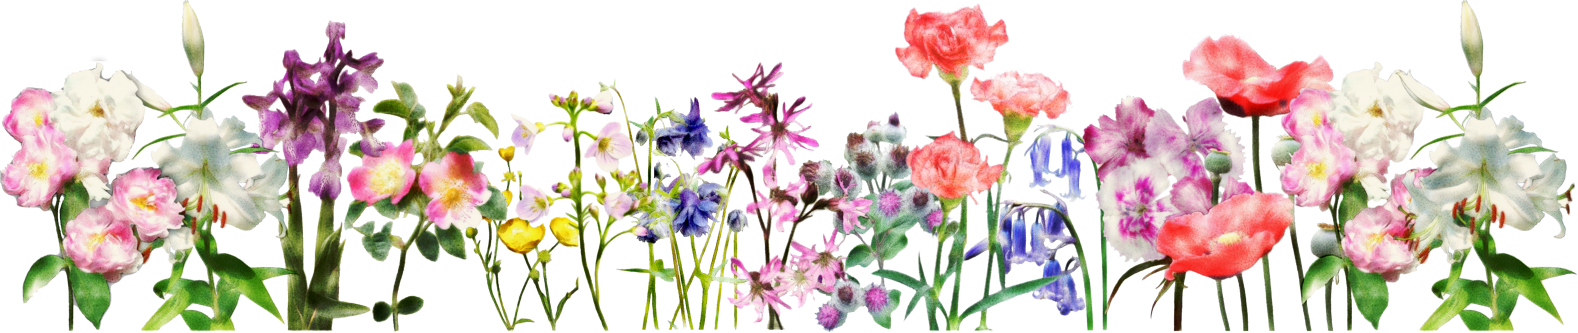 Flower banner png. Flowers for a beautiful